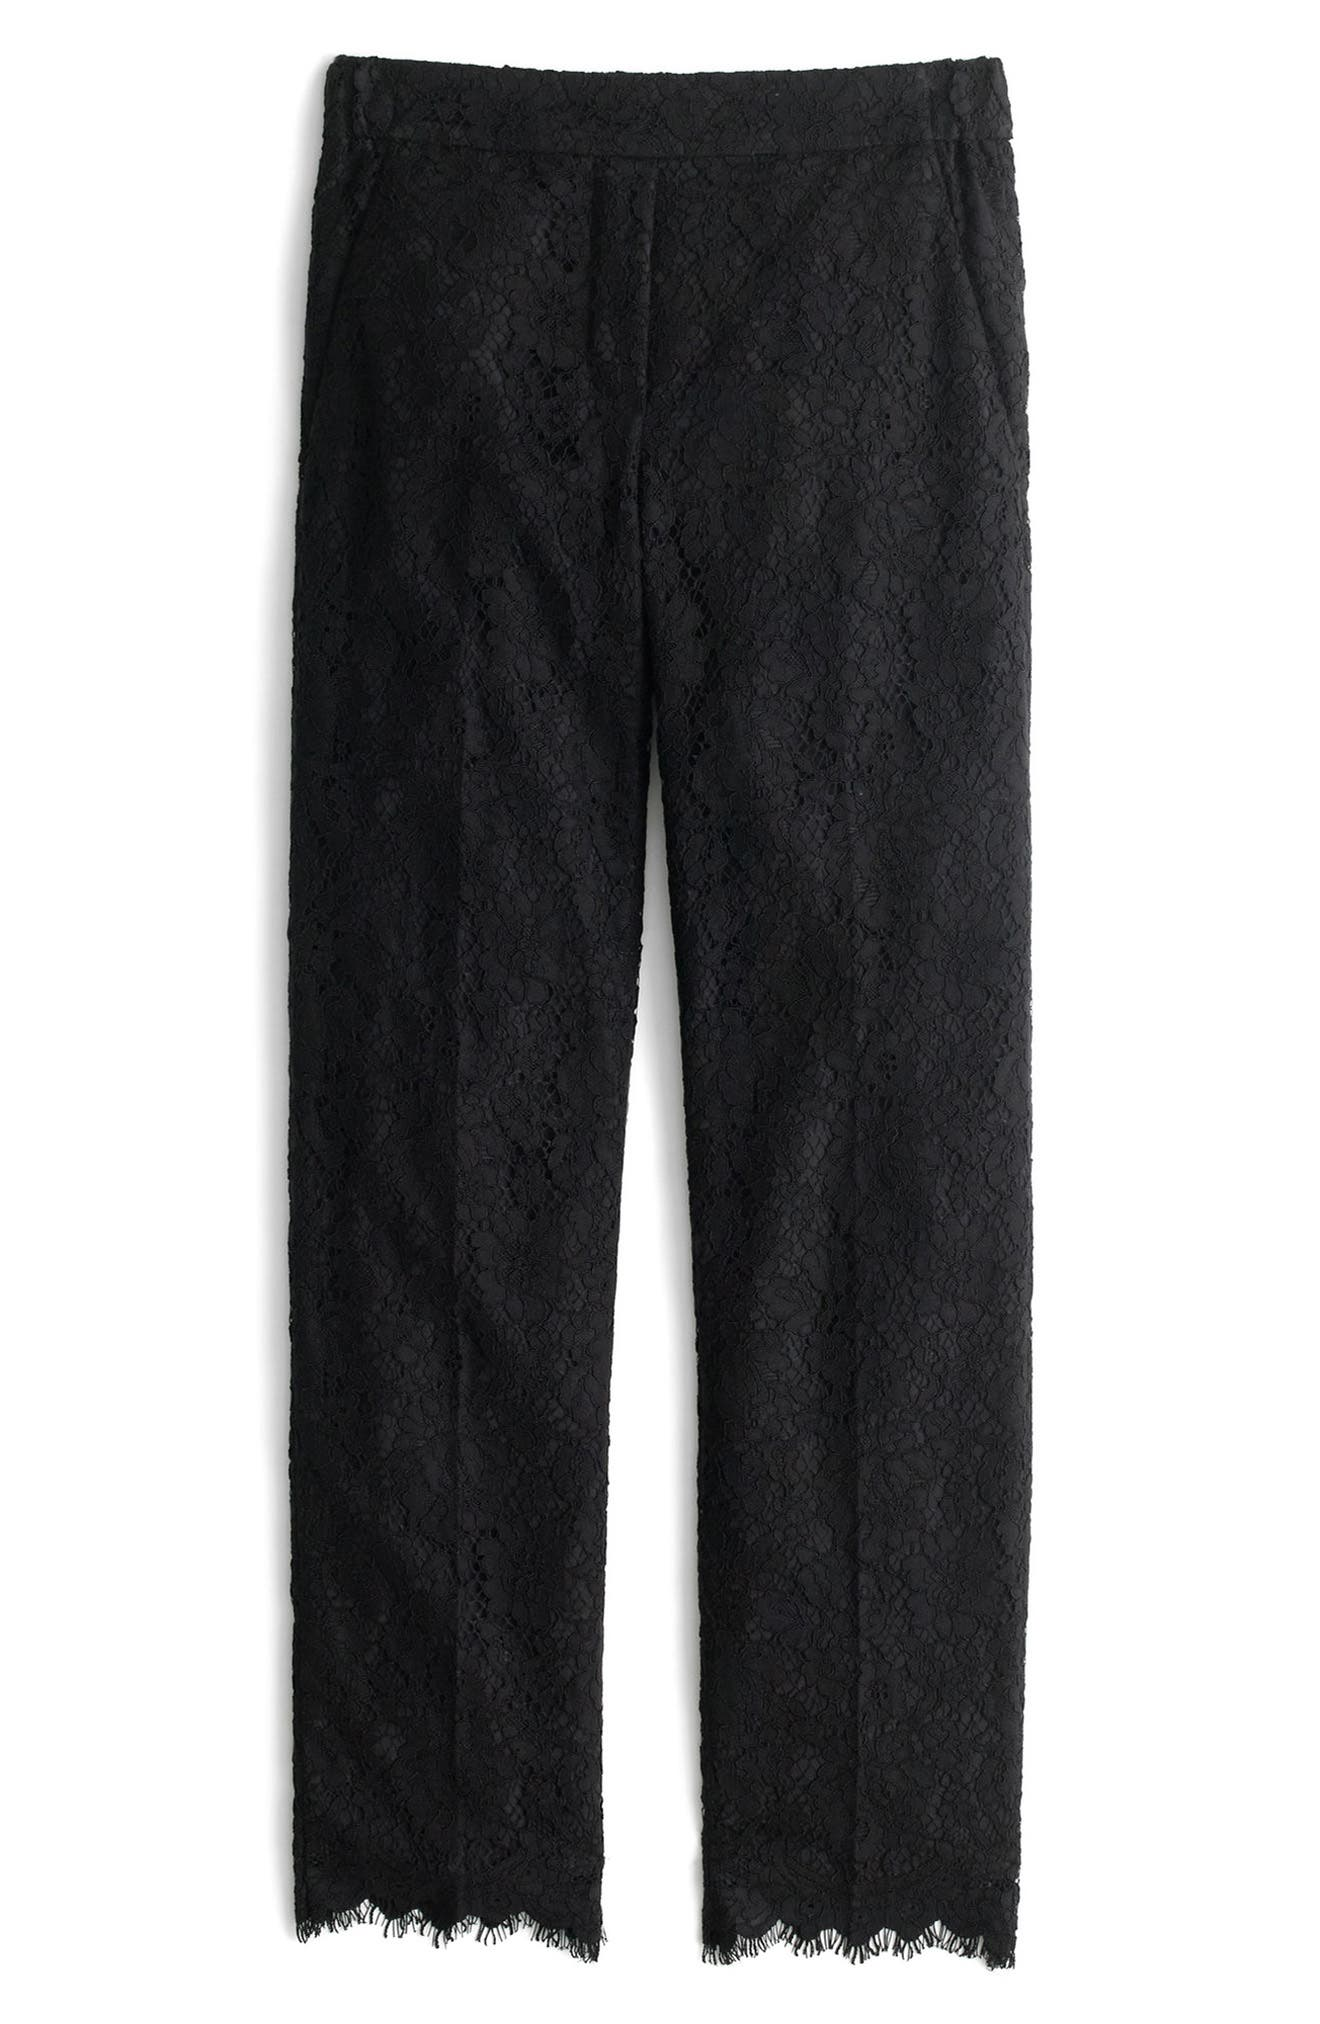 J.Crew Lace Pants (Regular & Petite)